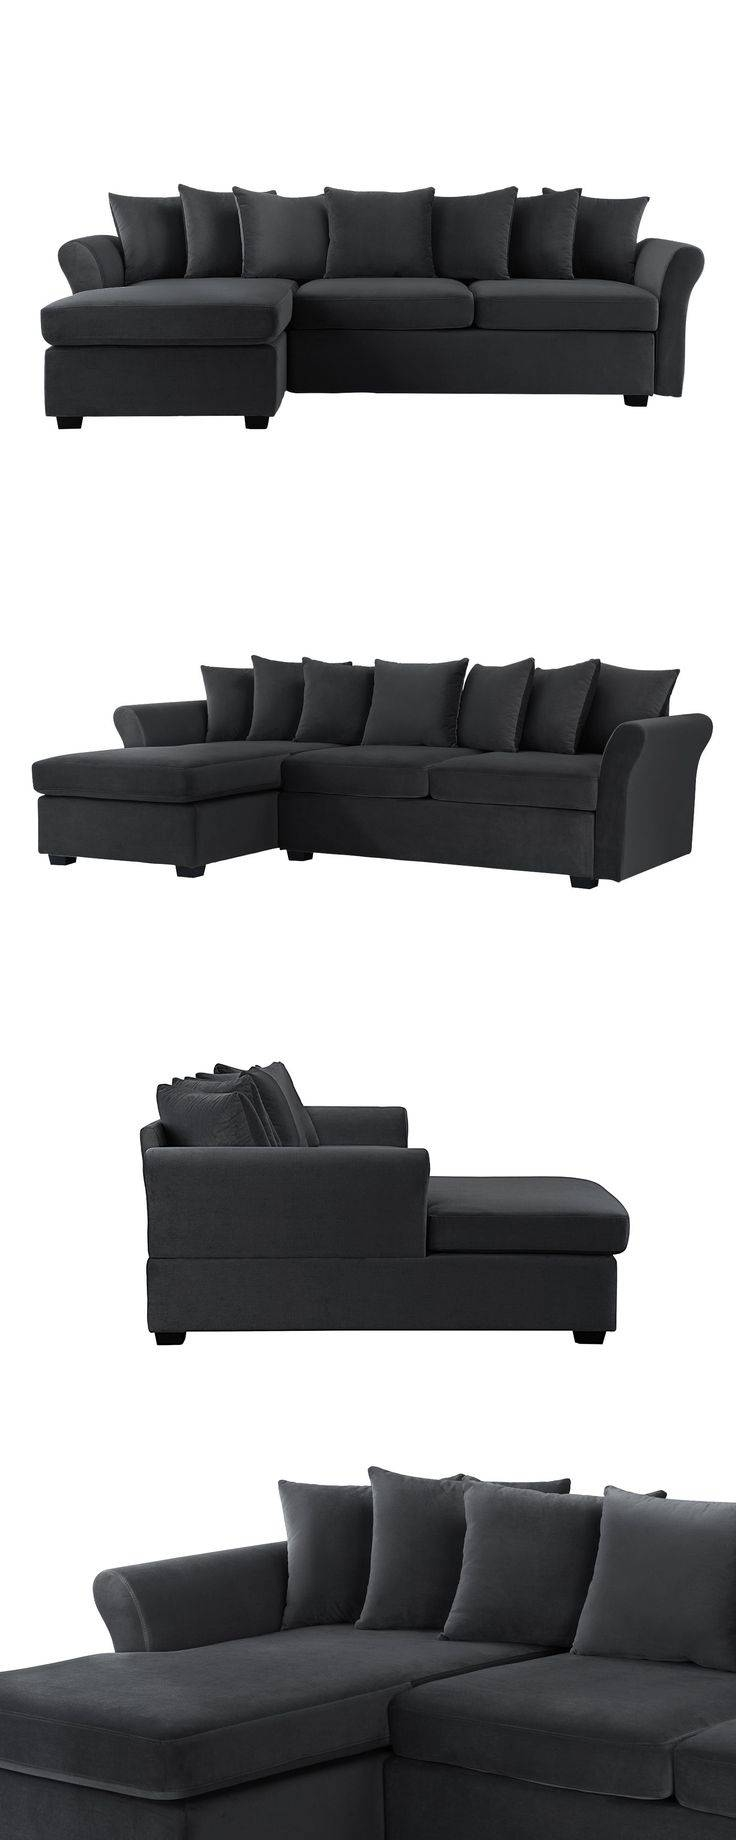 Best 25+ Large Sectional Sofa Ideas Only On Pinterest | Large for Wide Seat Sectional Sofas (Image 2 of 25)